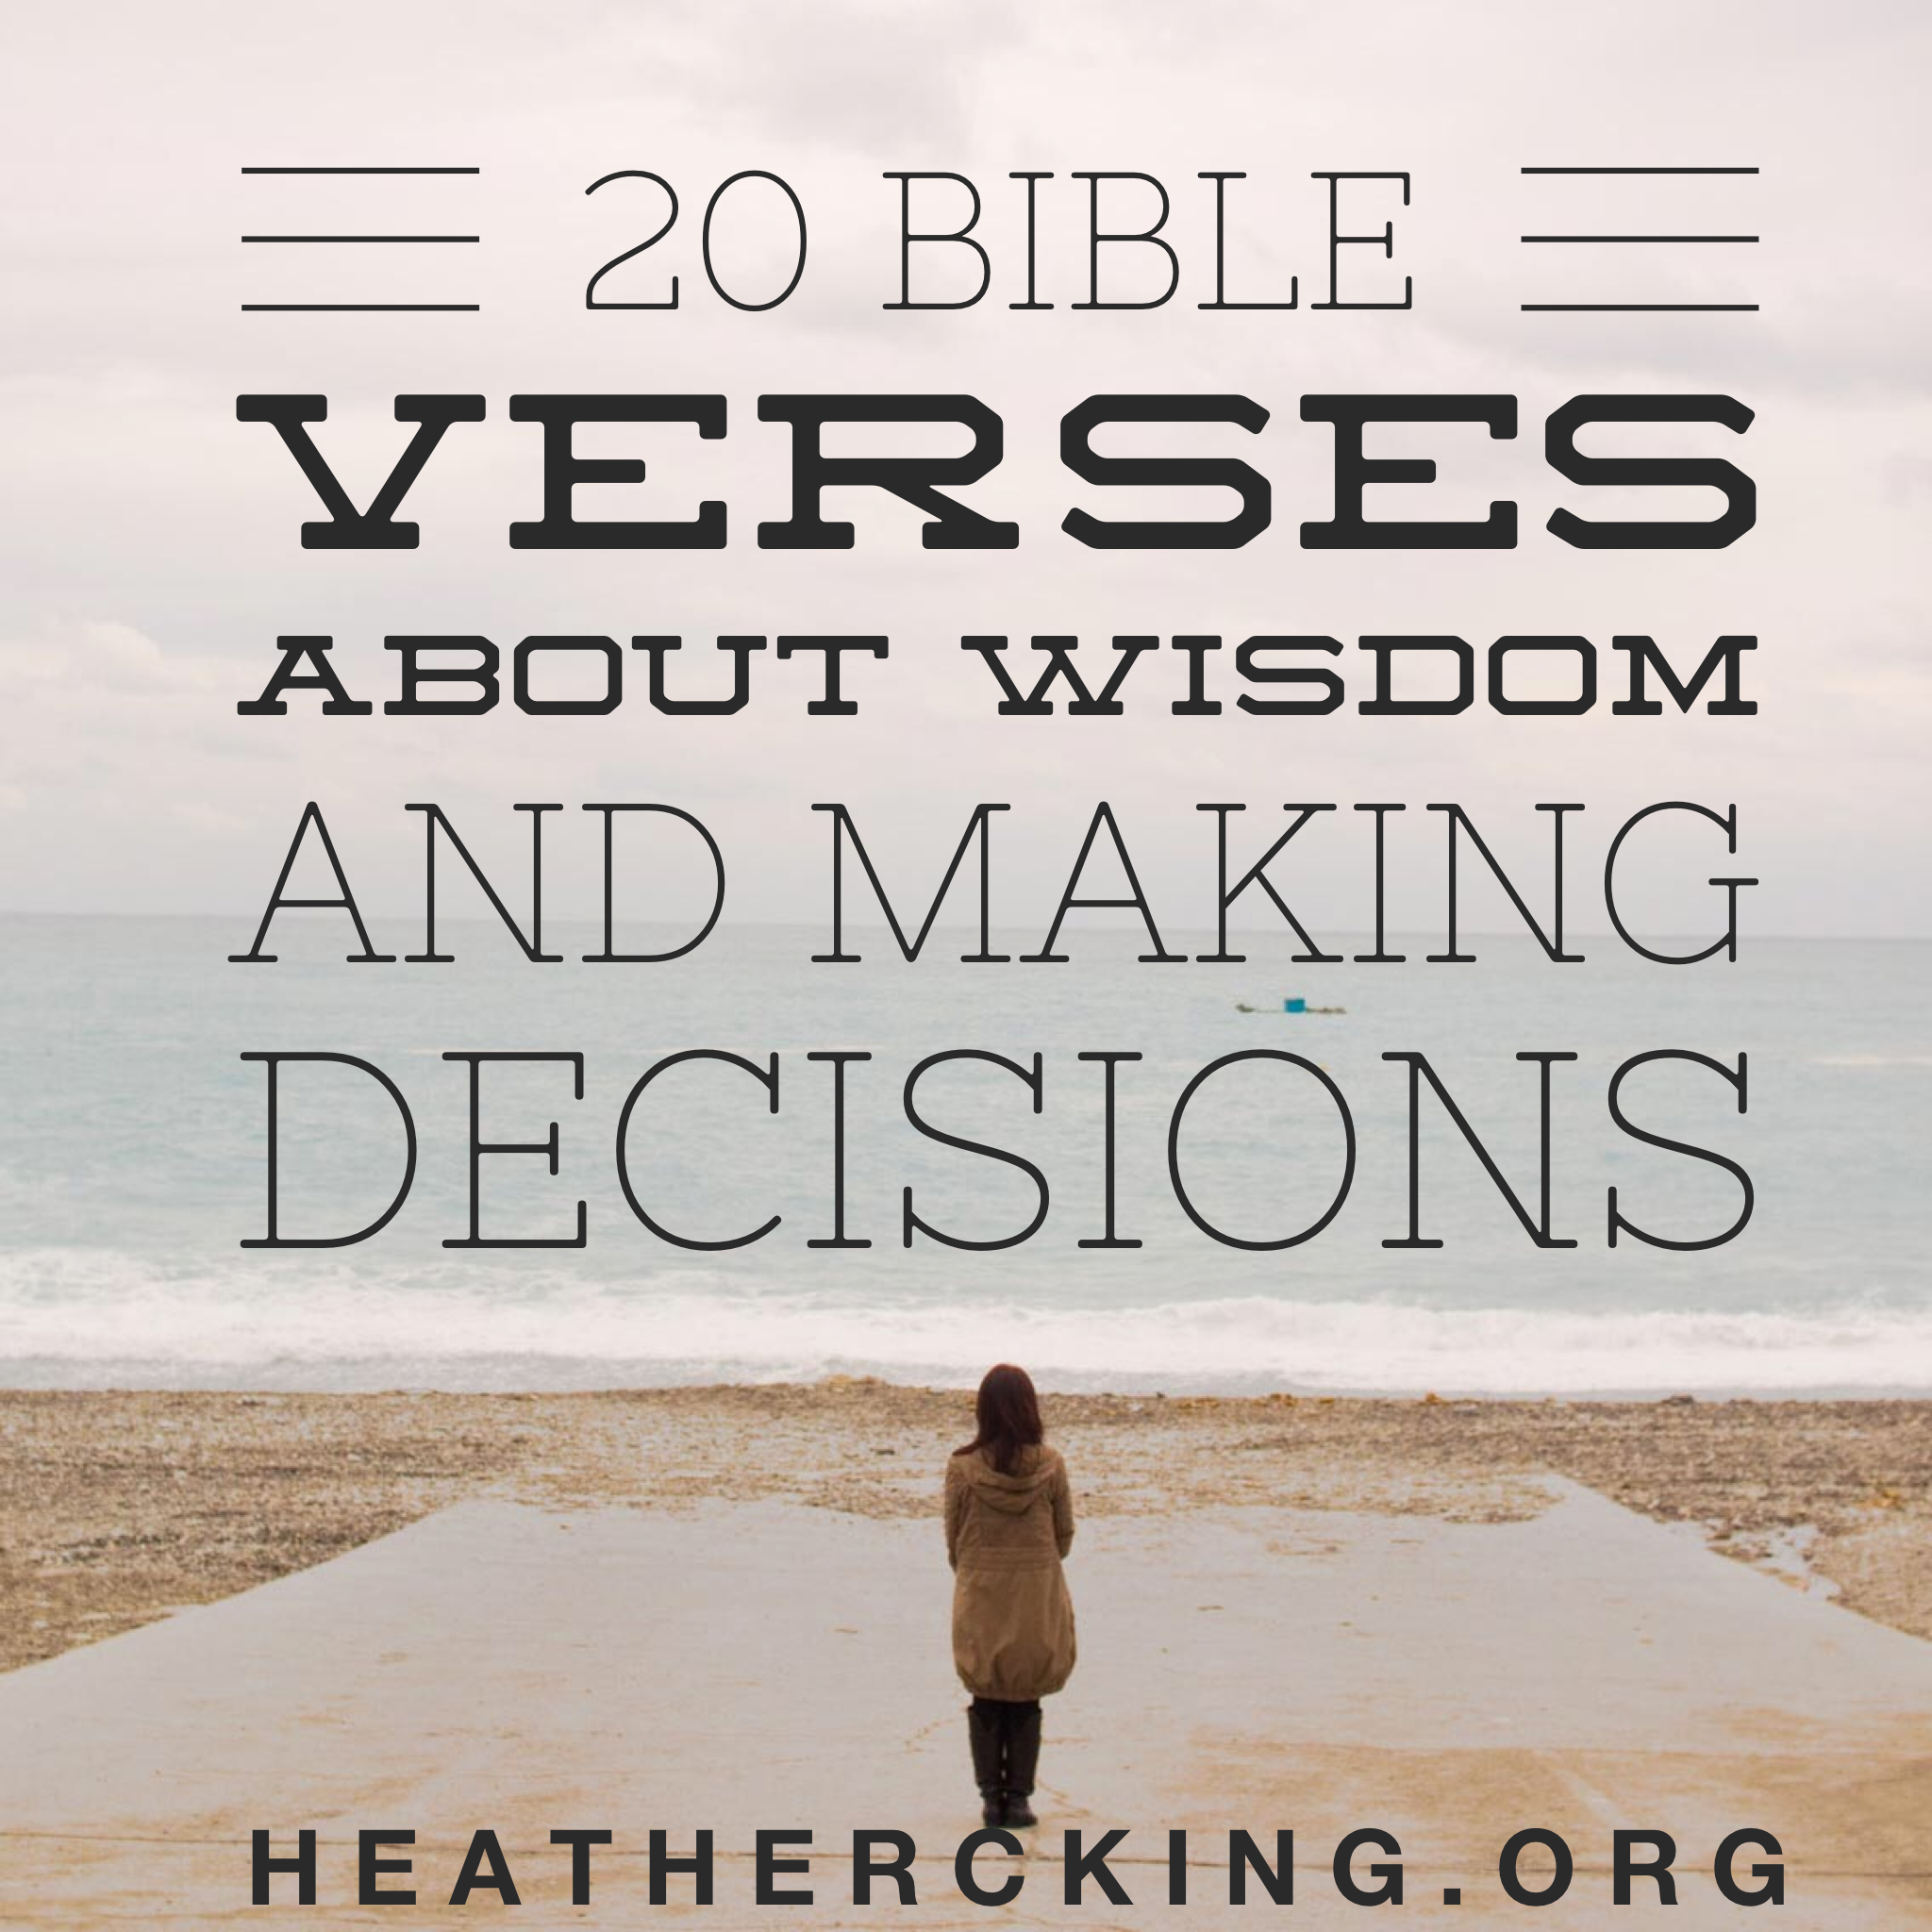 Bible Quotes Classy 20 Bible Verses On Wisdom And Making Tough Decisions  Heather C